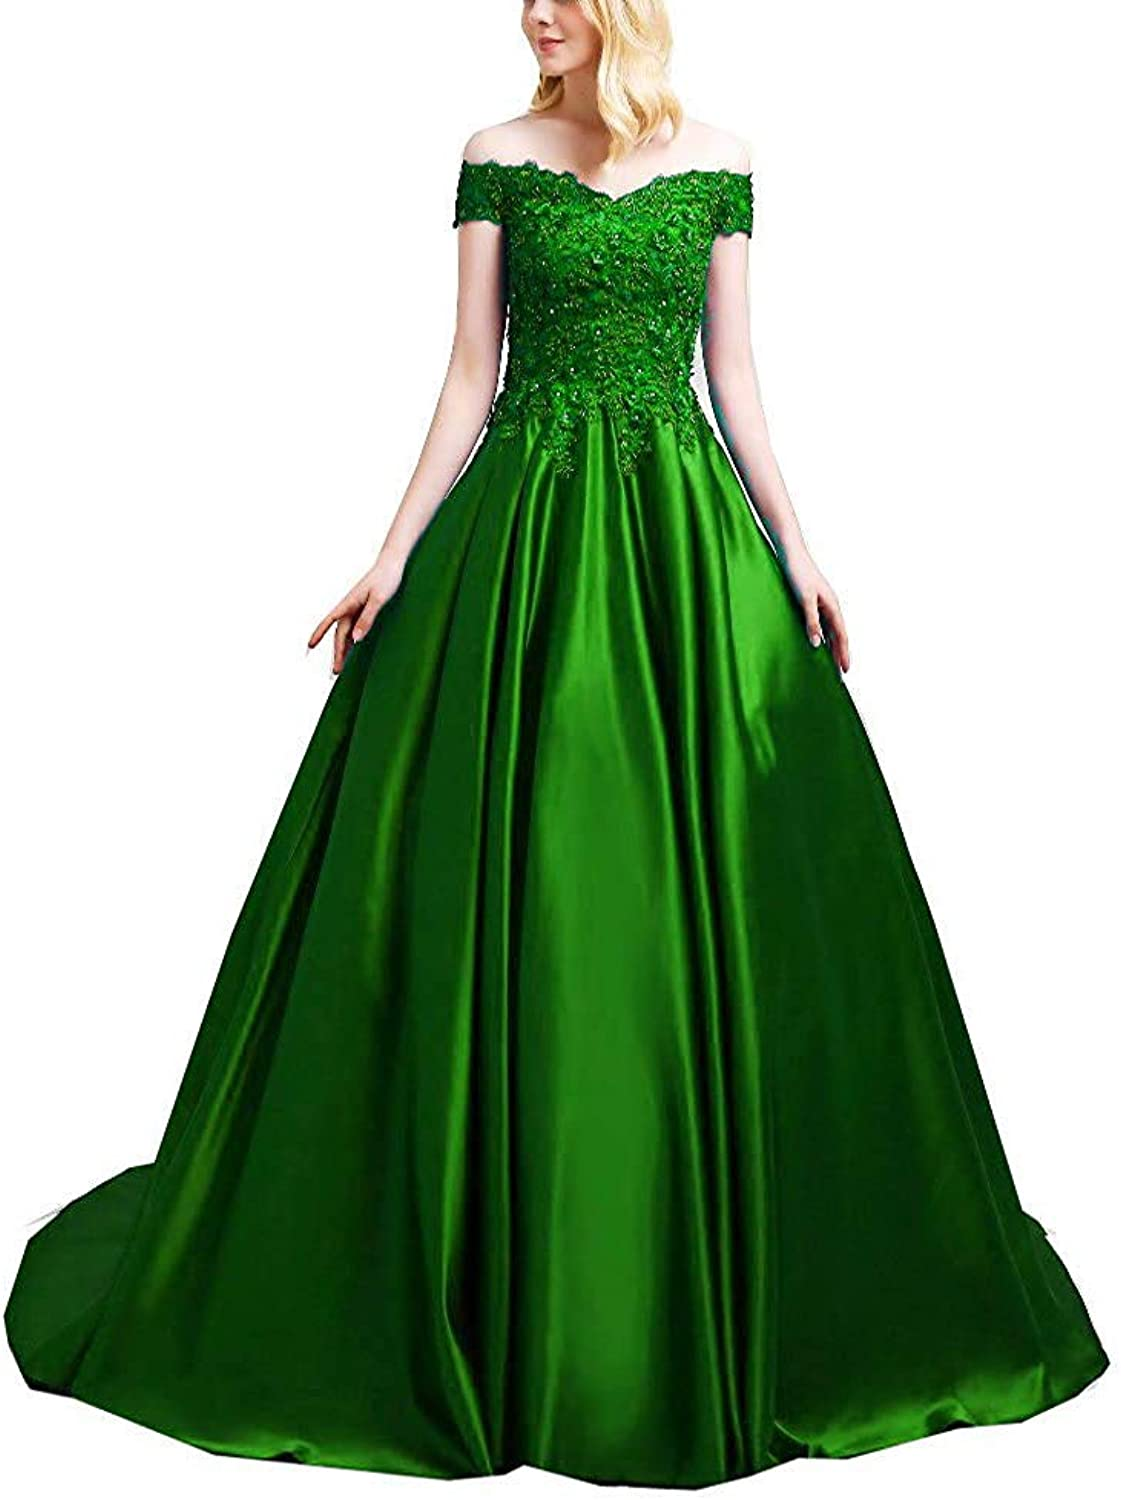 ANFF Women's Ball Gown Prom Dresses Beaded Long Formal Evening Dress Lace